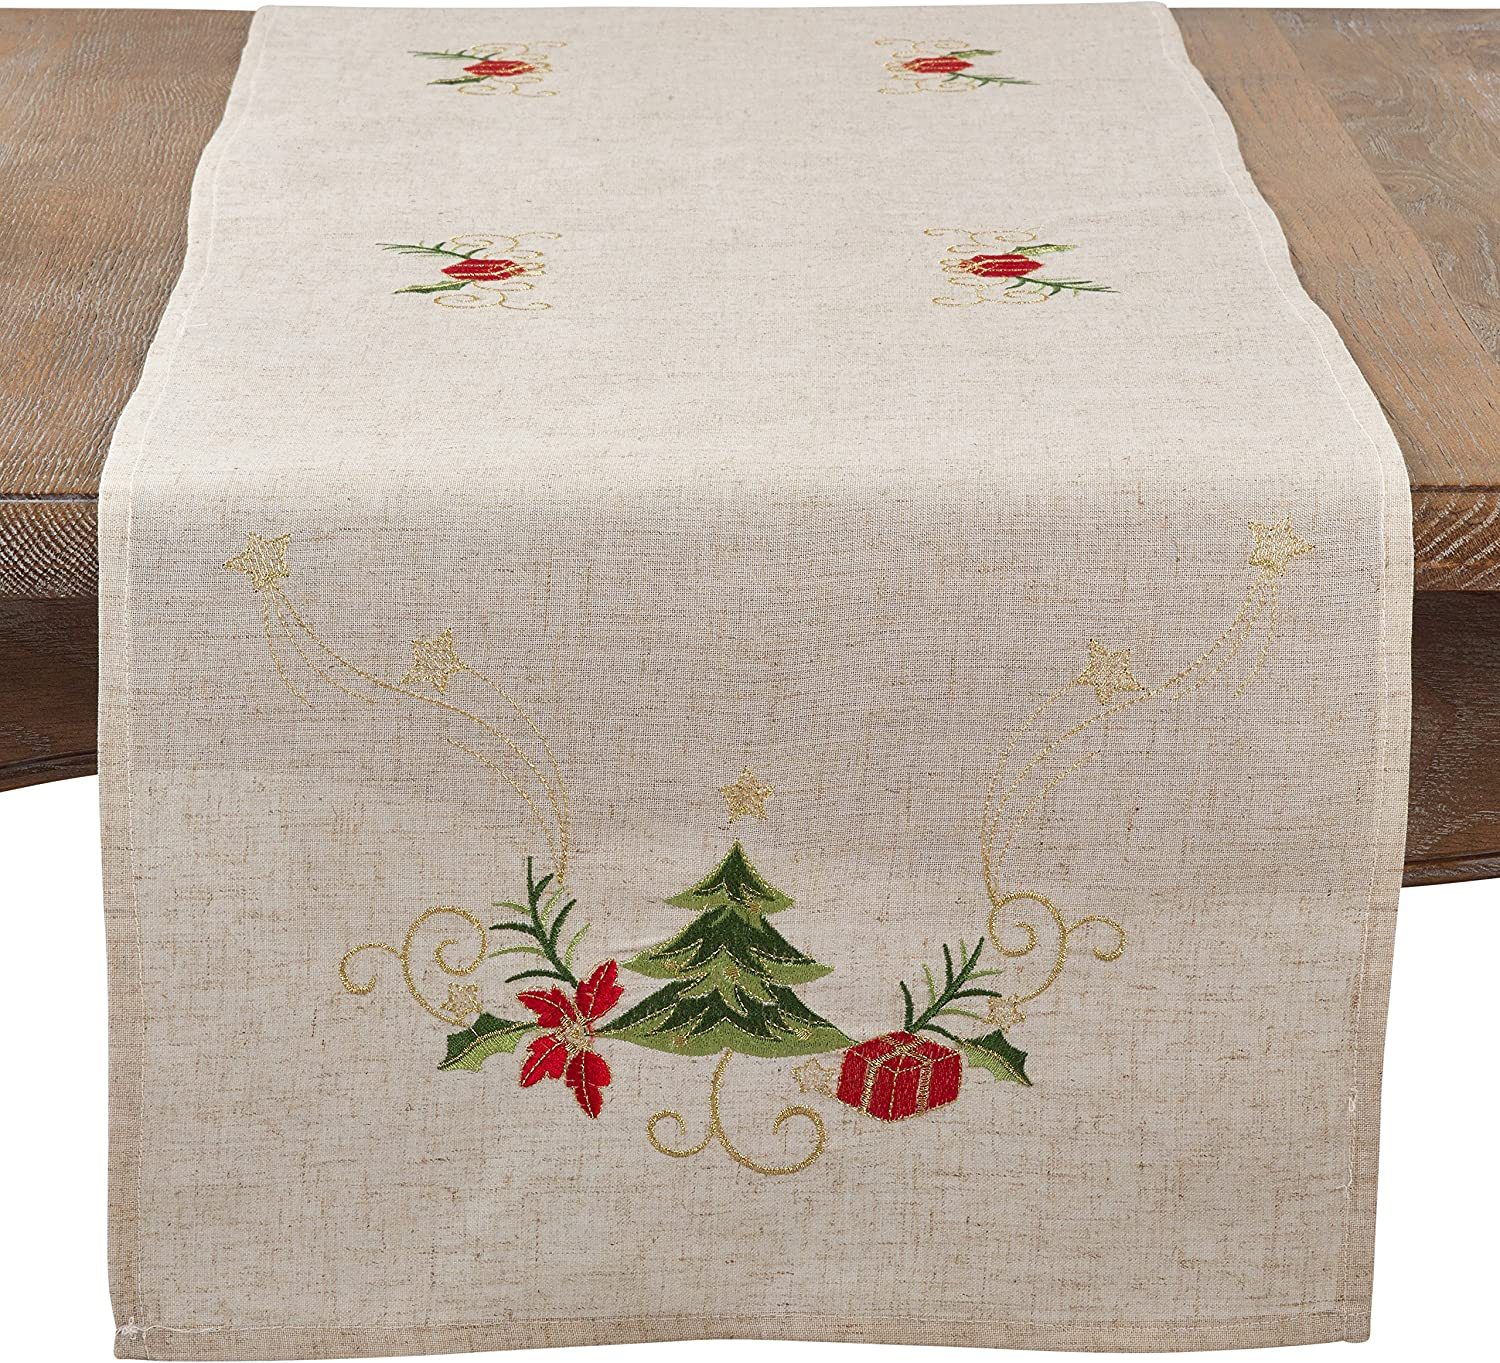 Amazon Com Natural Color Embroidered Christmas Table Runner 16 X72 Oblong Home Kitchen